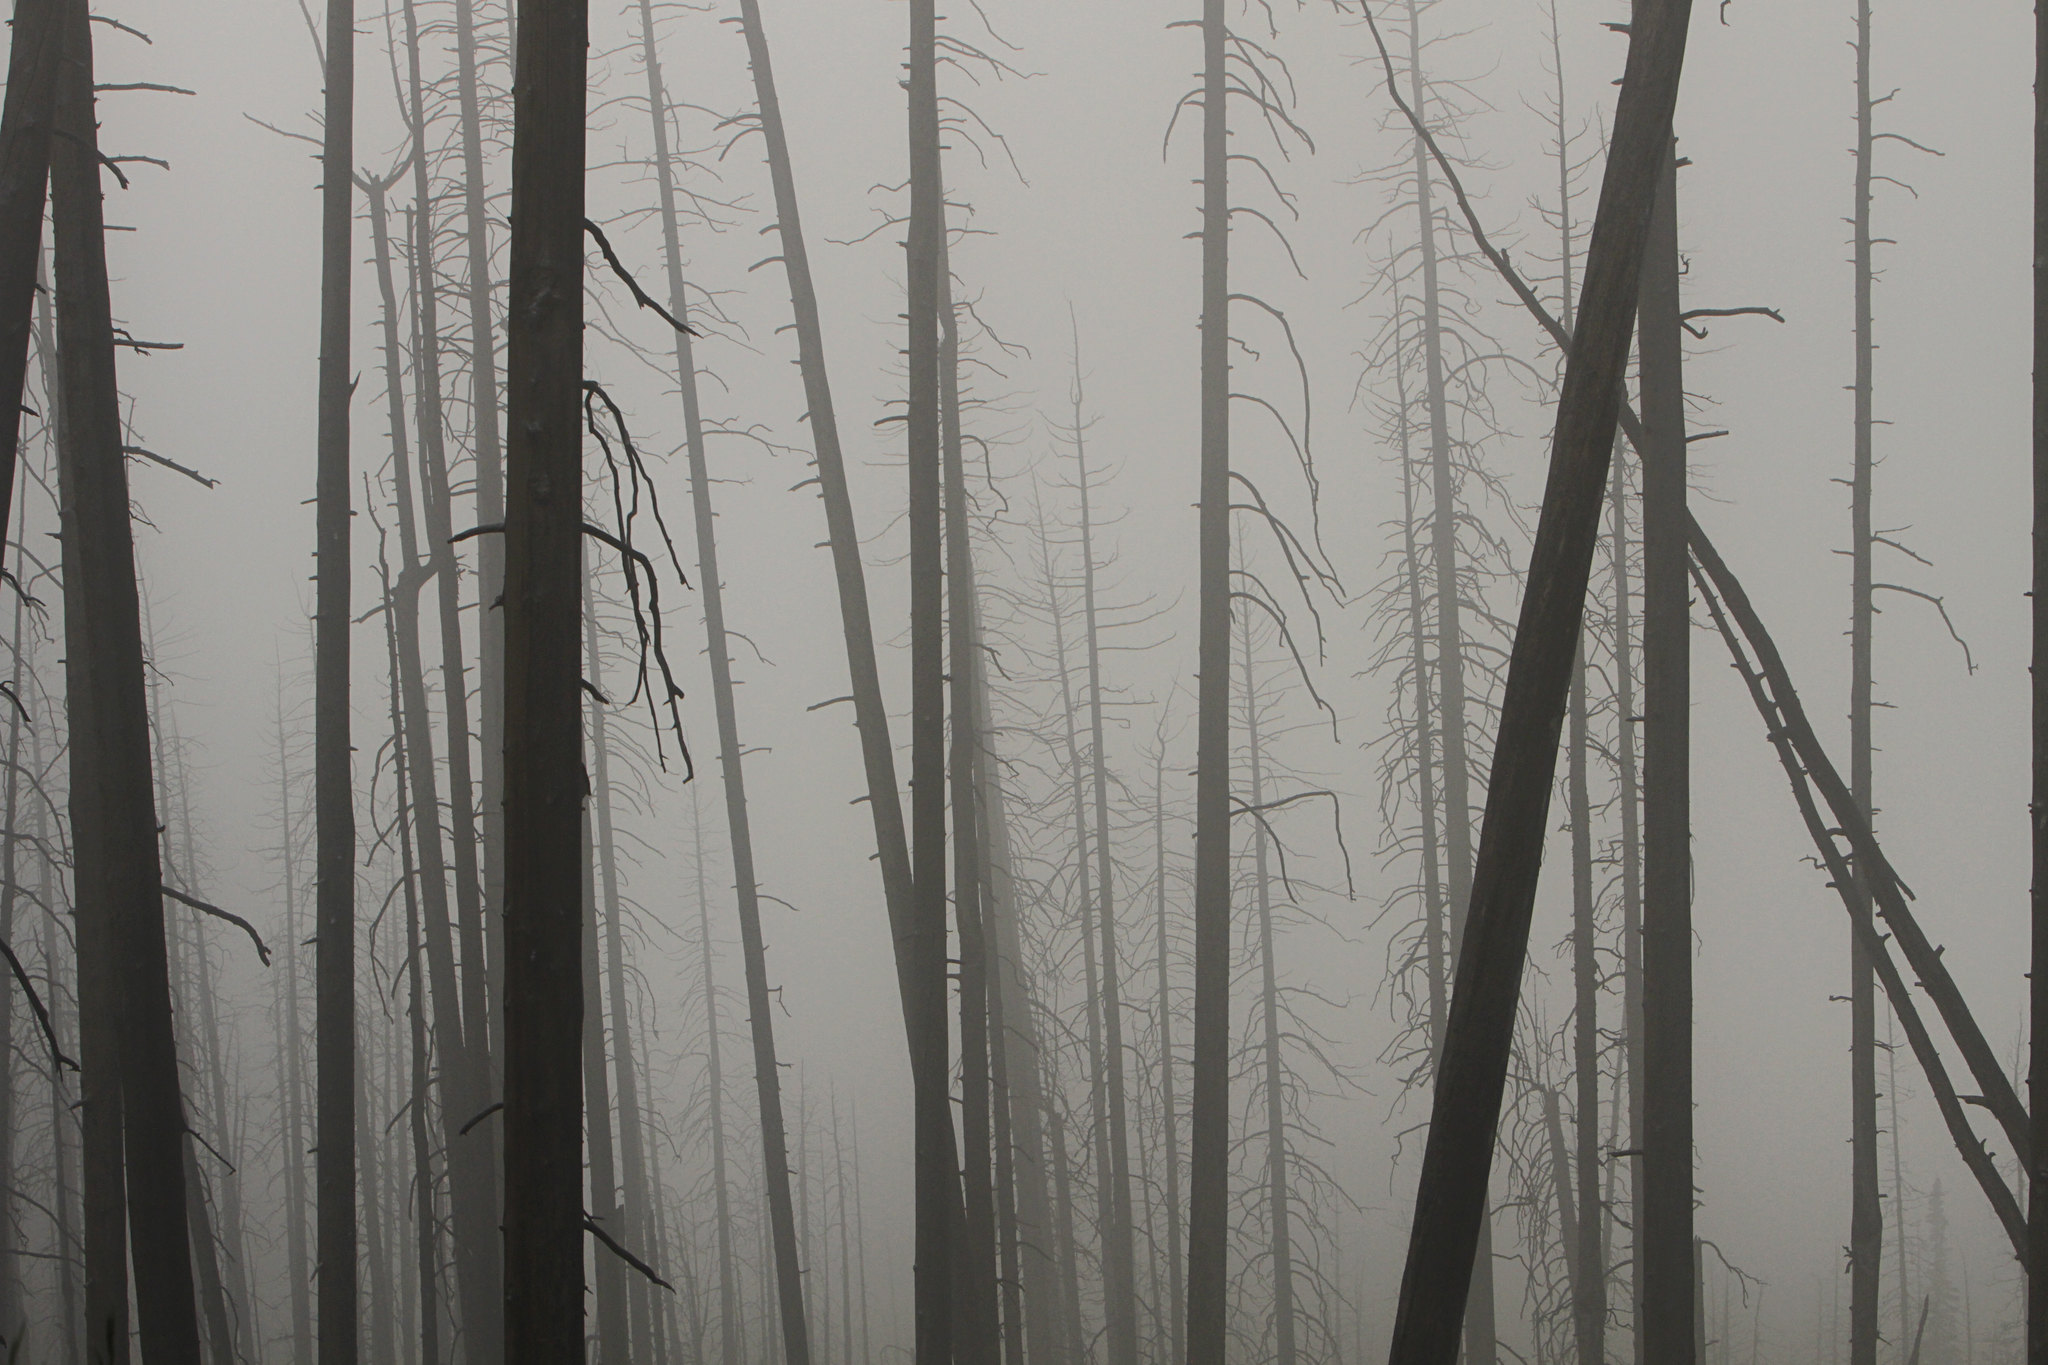 Burned trees in fog